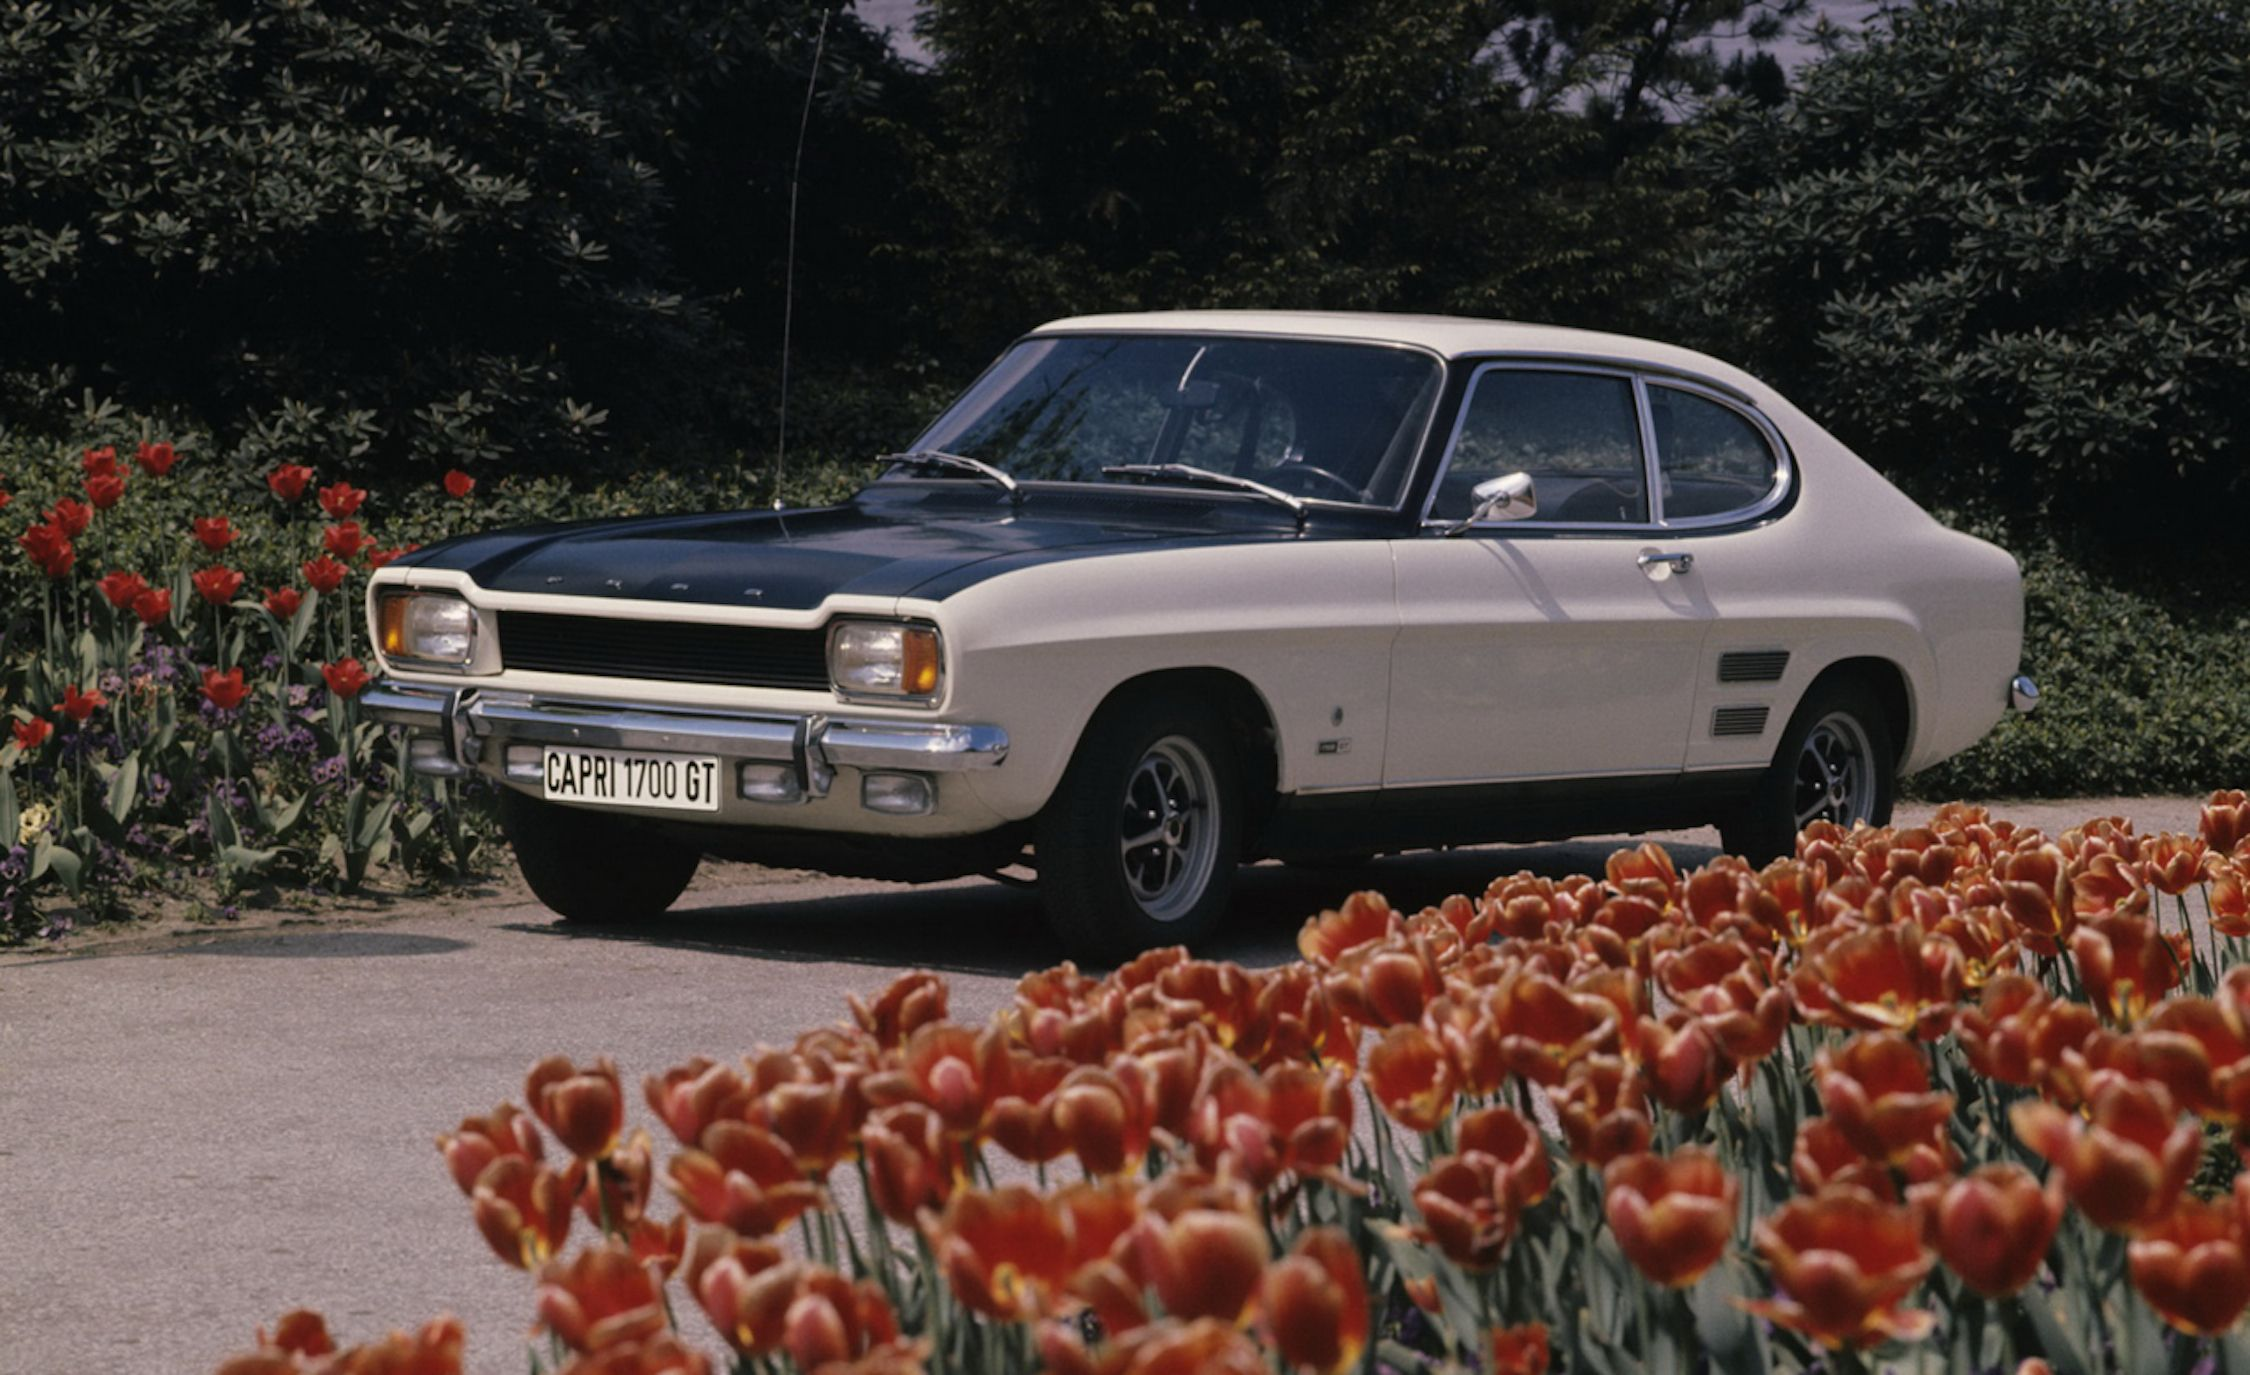 Ford For All These Are The 20 Best Ford Cars Of All Time Ford Capri Ford Capri